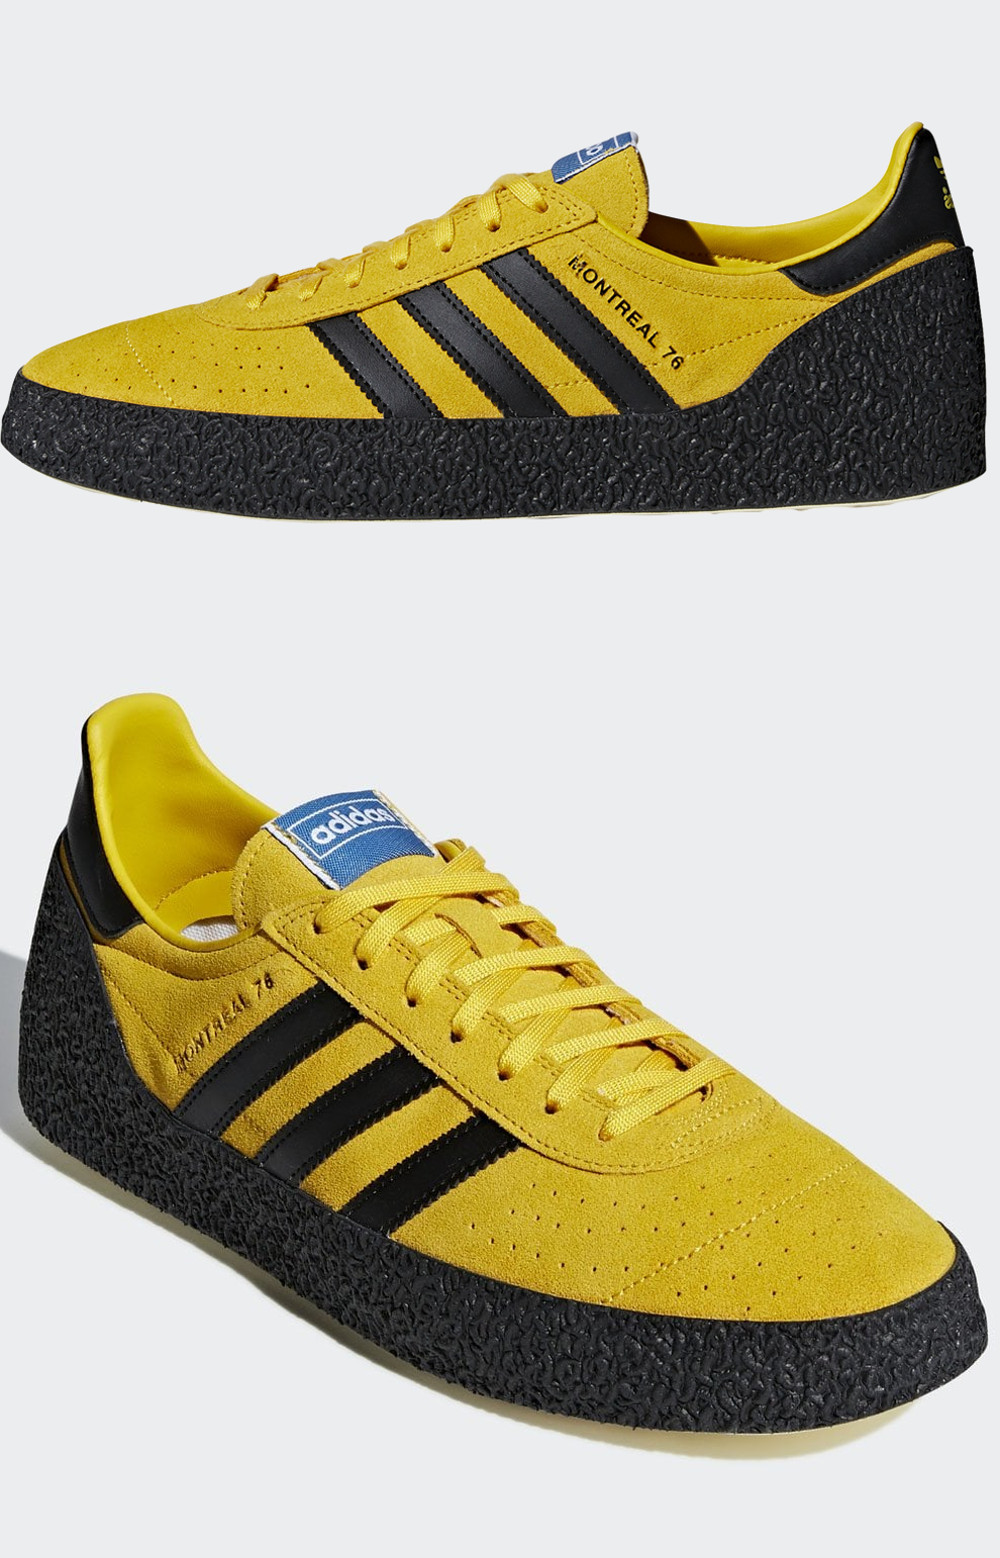 The adidas Montreal 76 Trainer Was Originally Released For